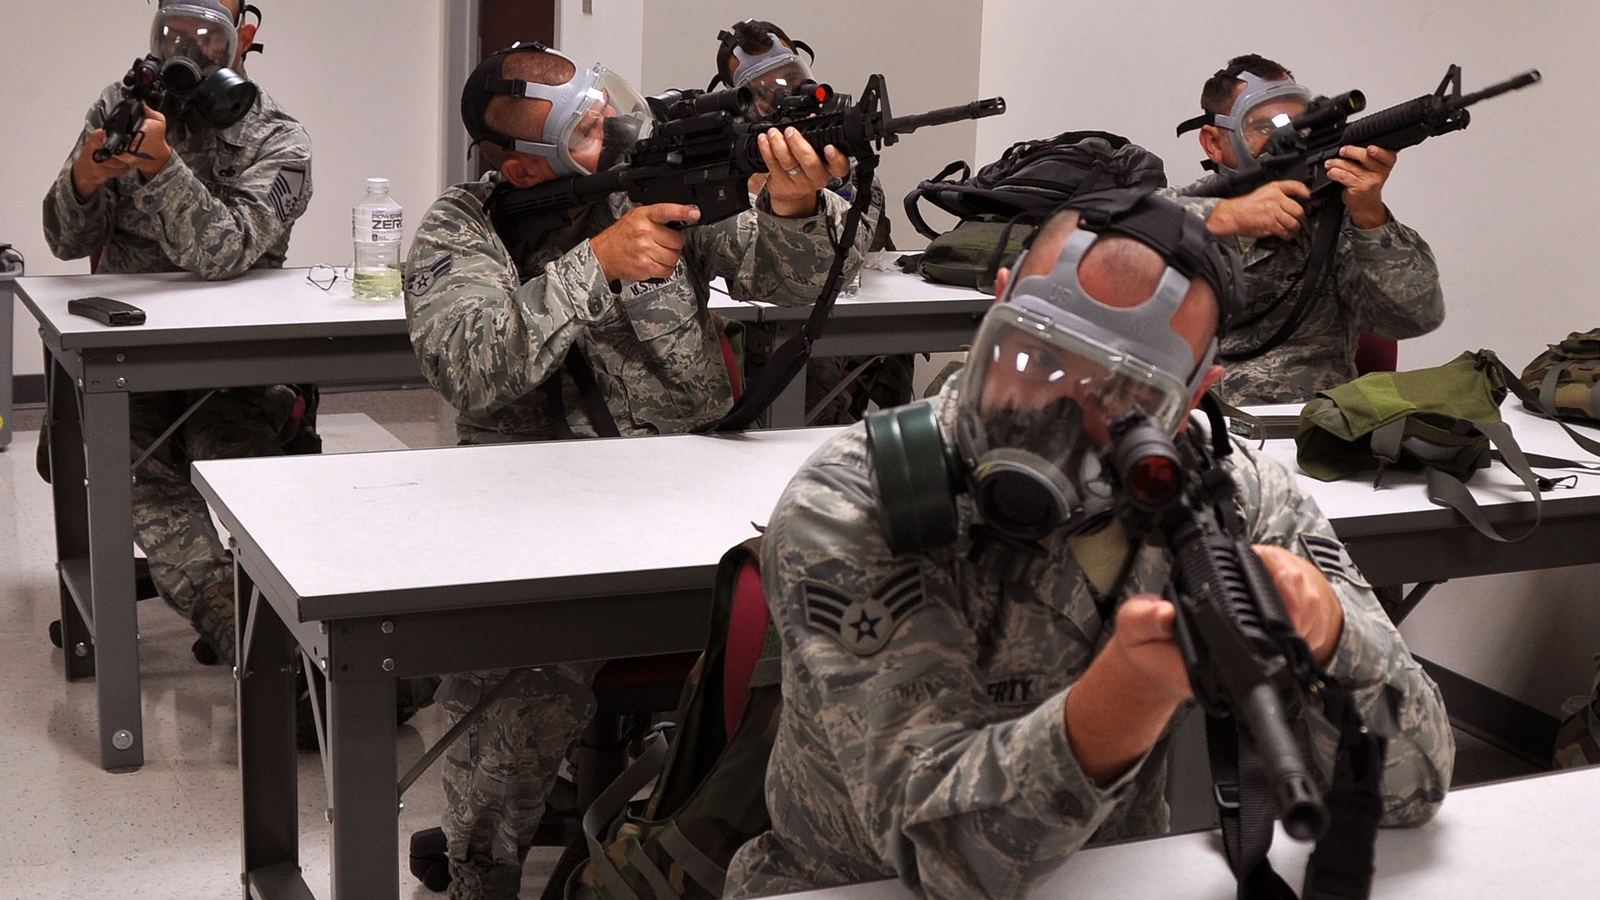 Click here to read Zombie Defense 101 Or US Air Force Students?